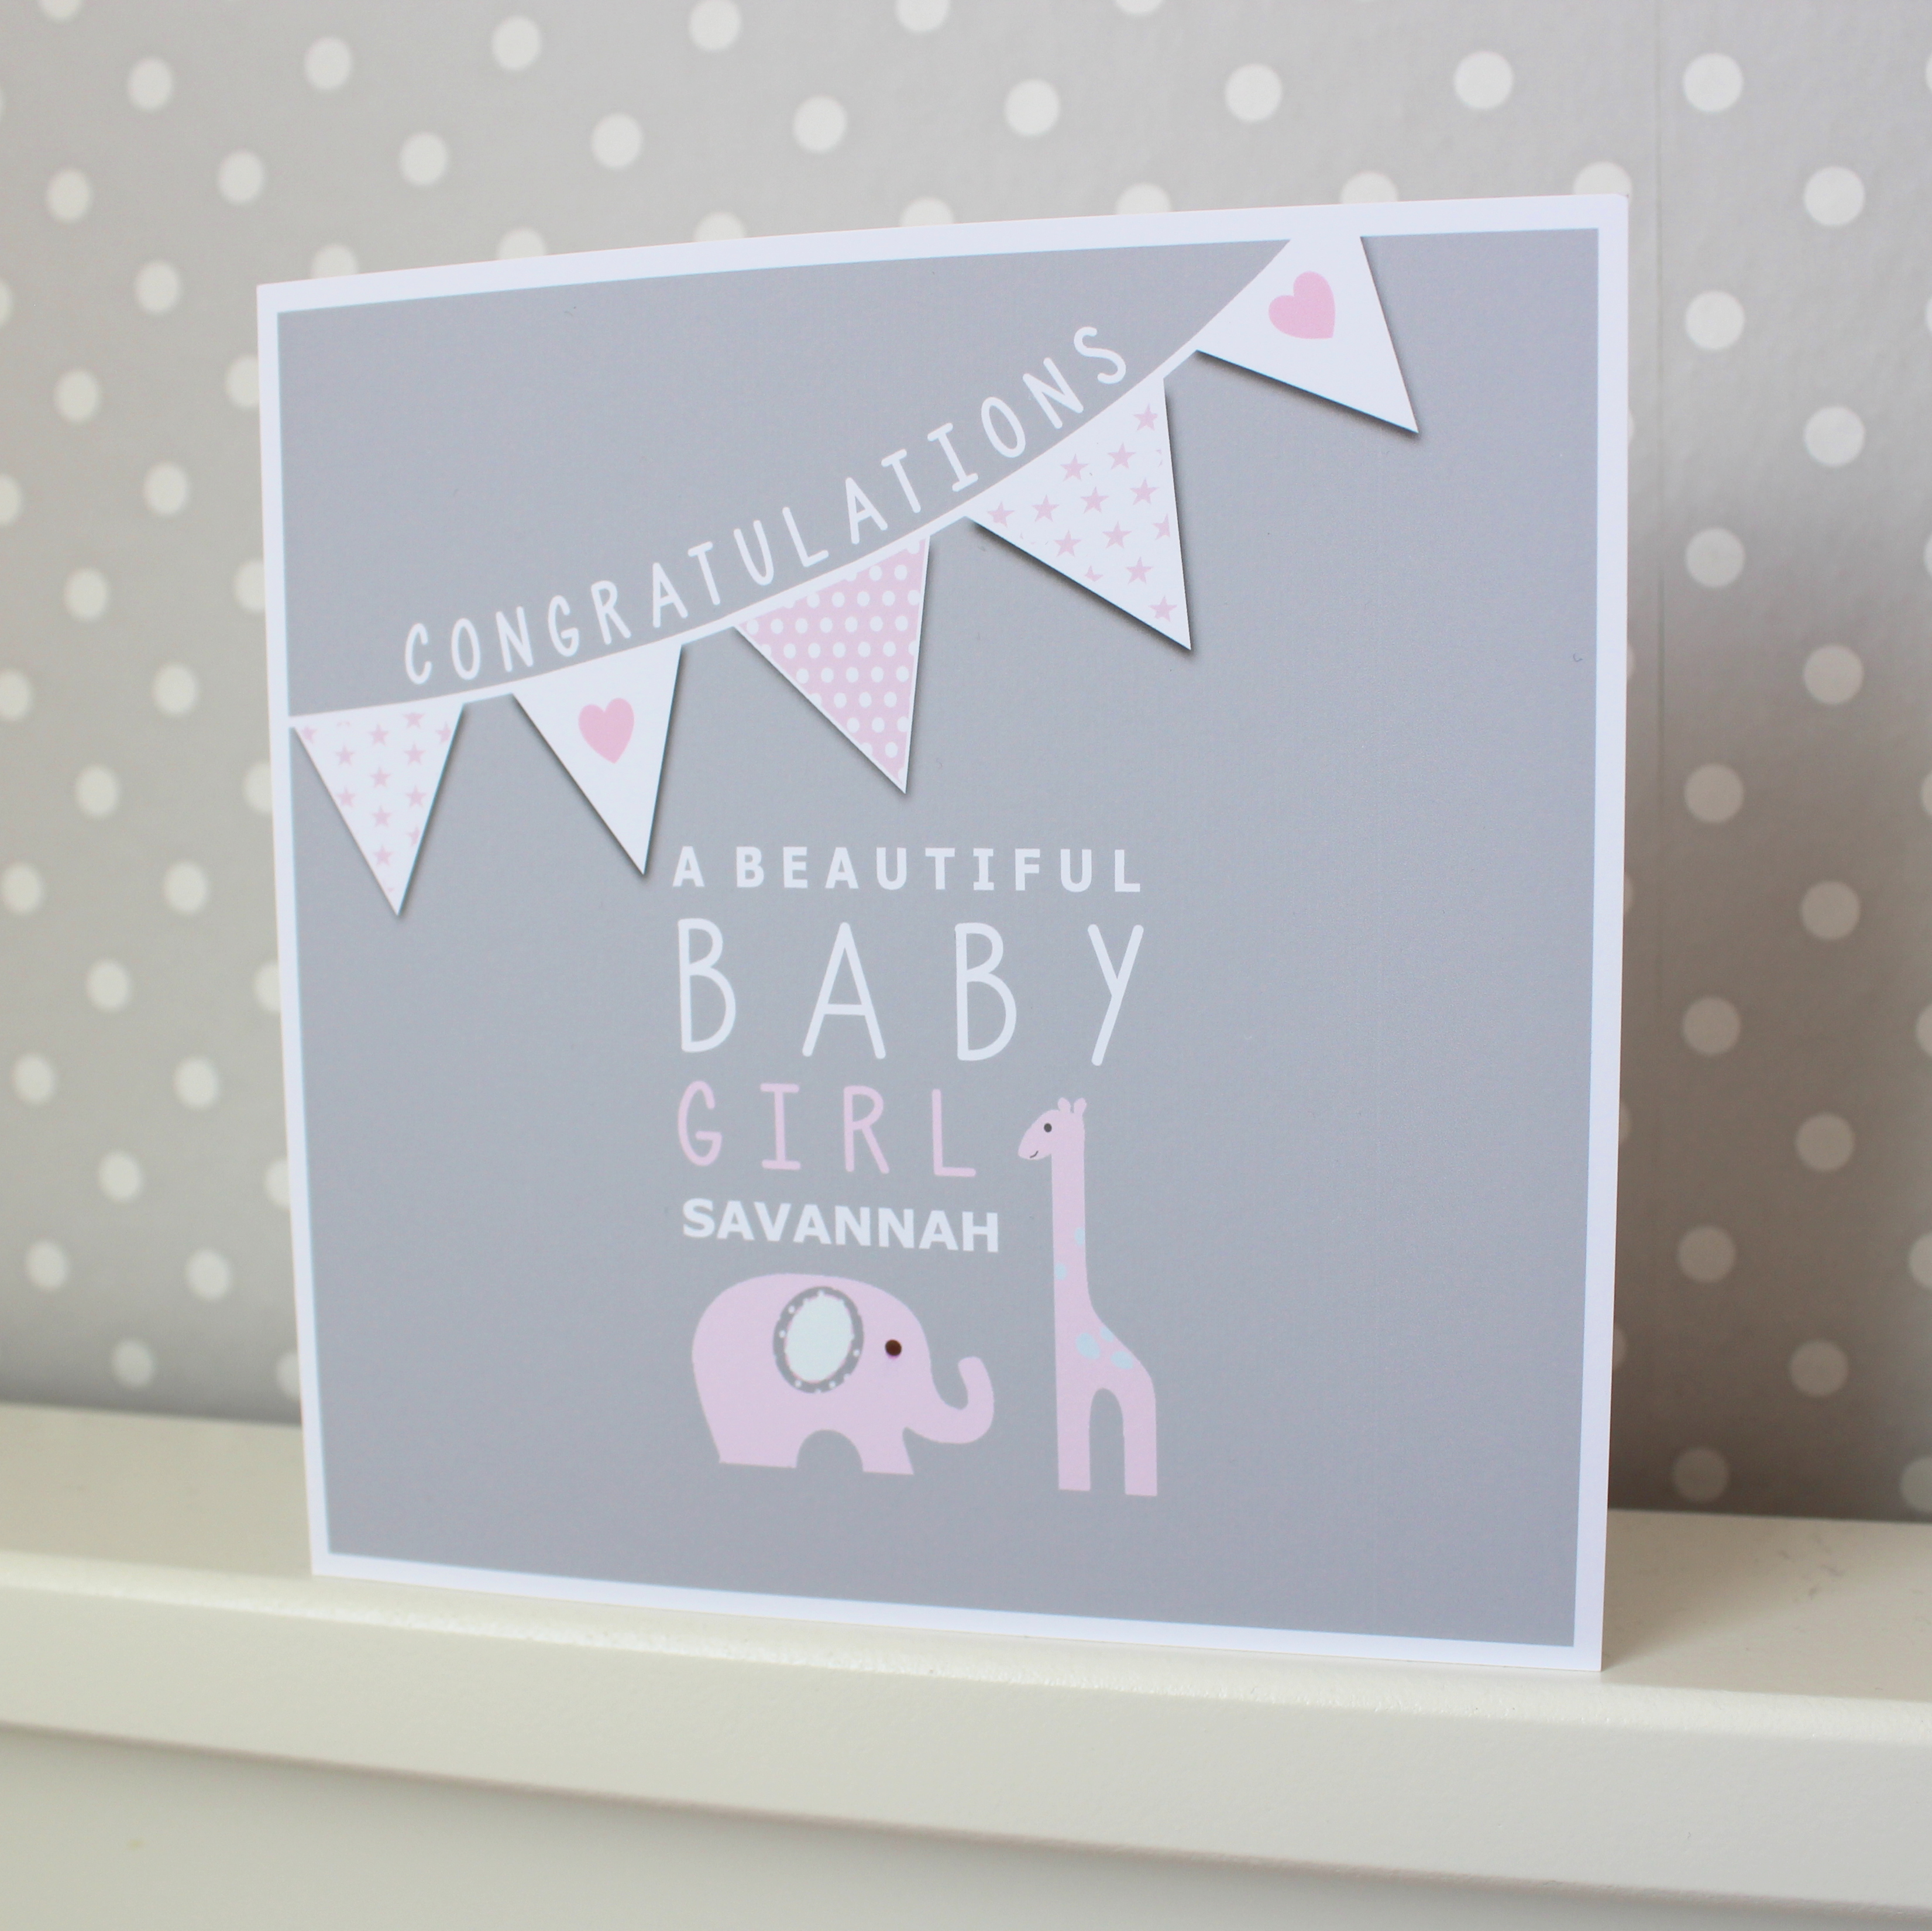 New Baby Girl Personalised Congratulations Card